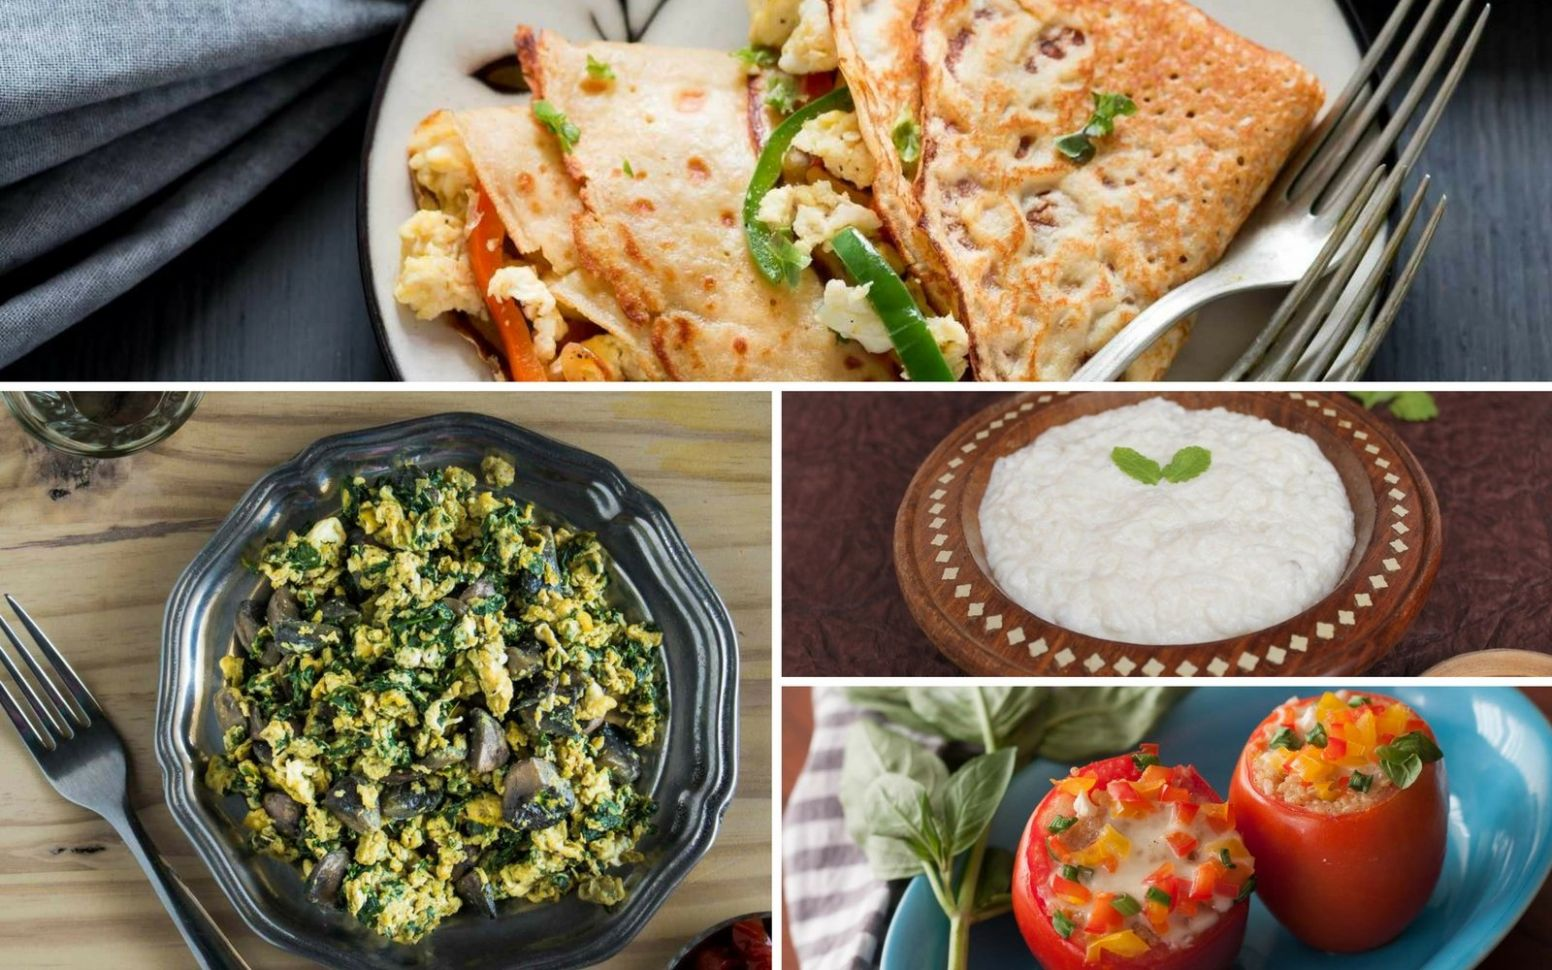 Easy Breakfast Ideas For Beginners by Archana's Kitchen - The Tech ...